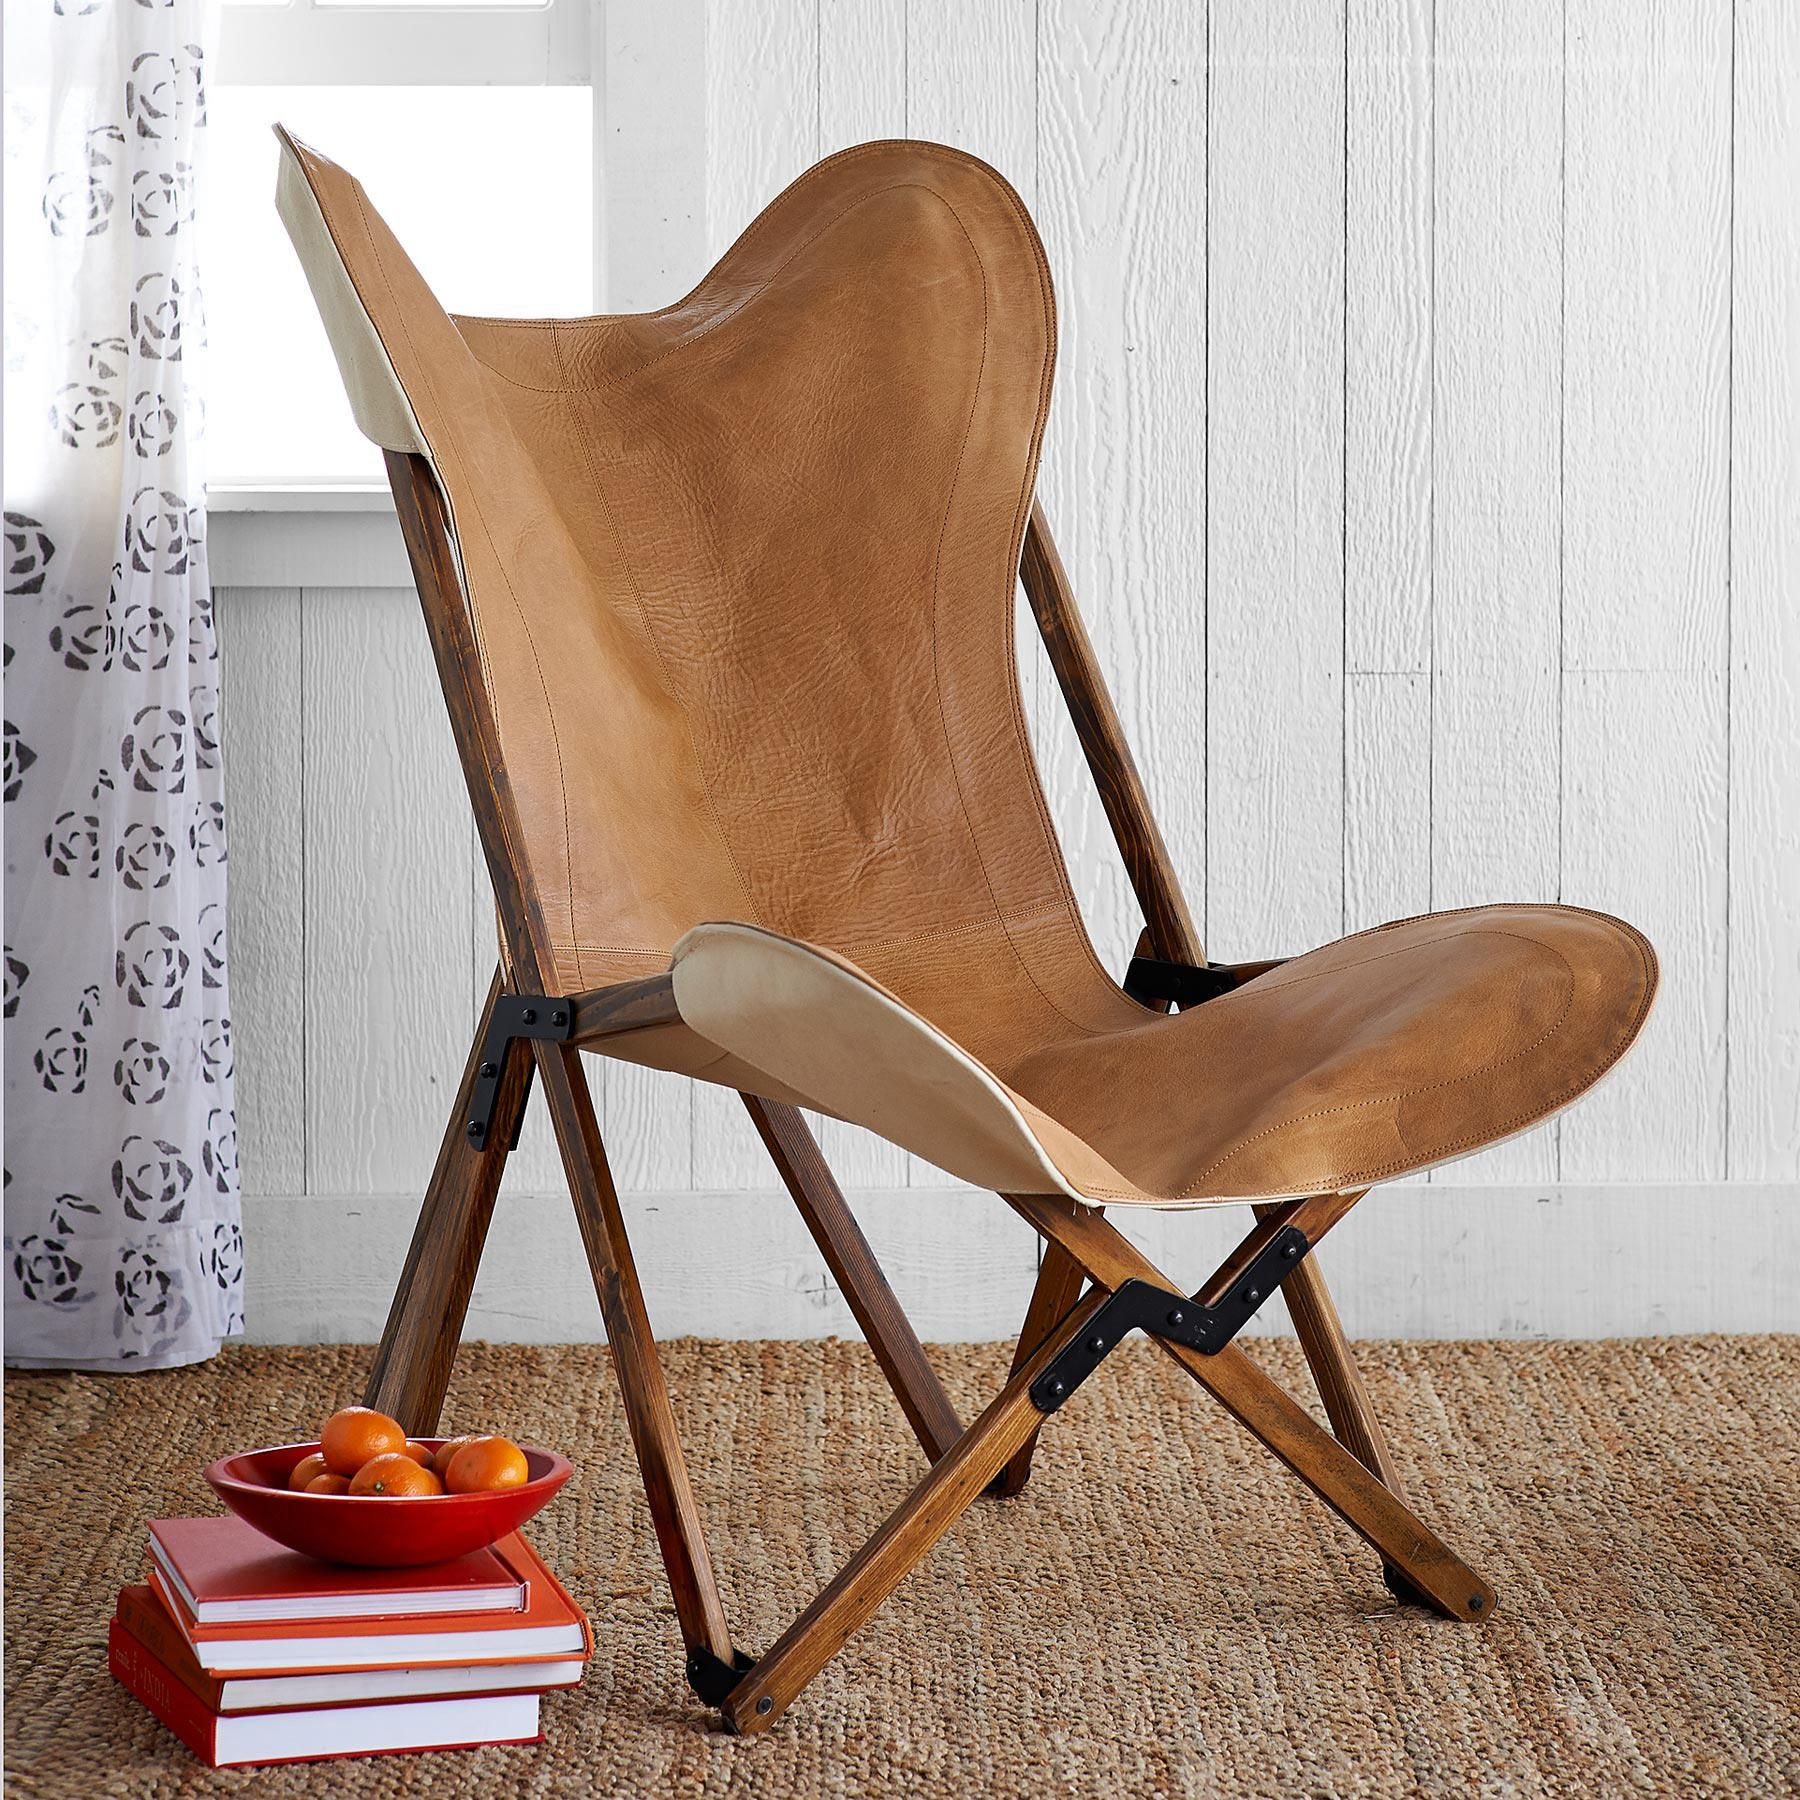 Wimberly Saddle Chair Roomy And Durable With Just The Right Touch Of Elegance This Folding